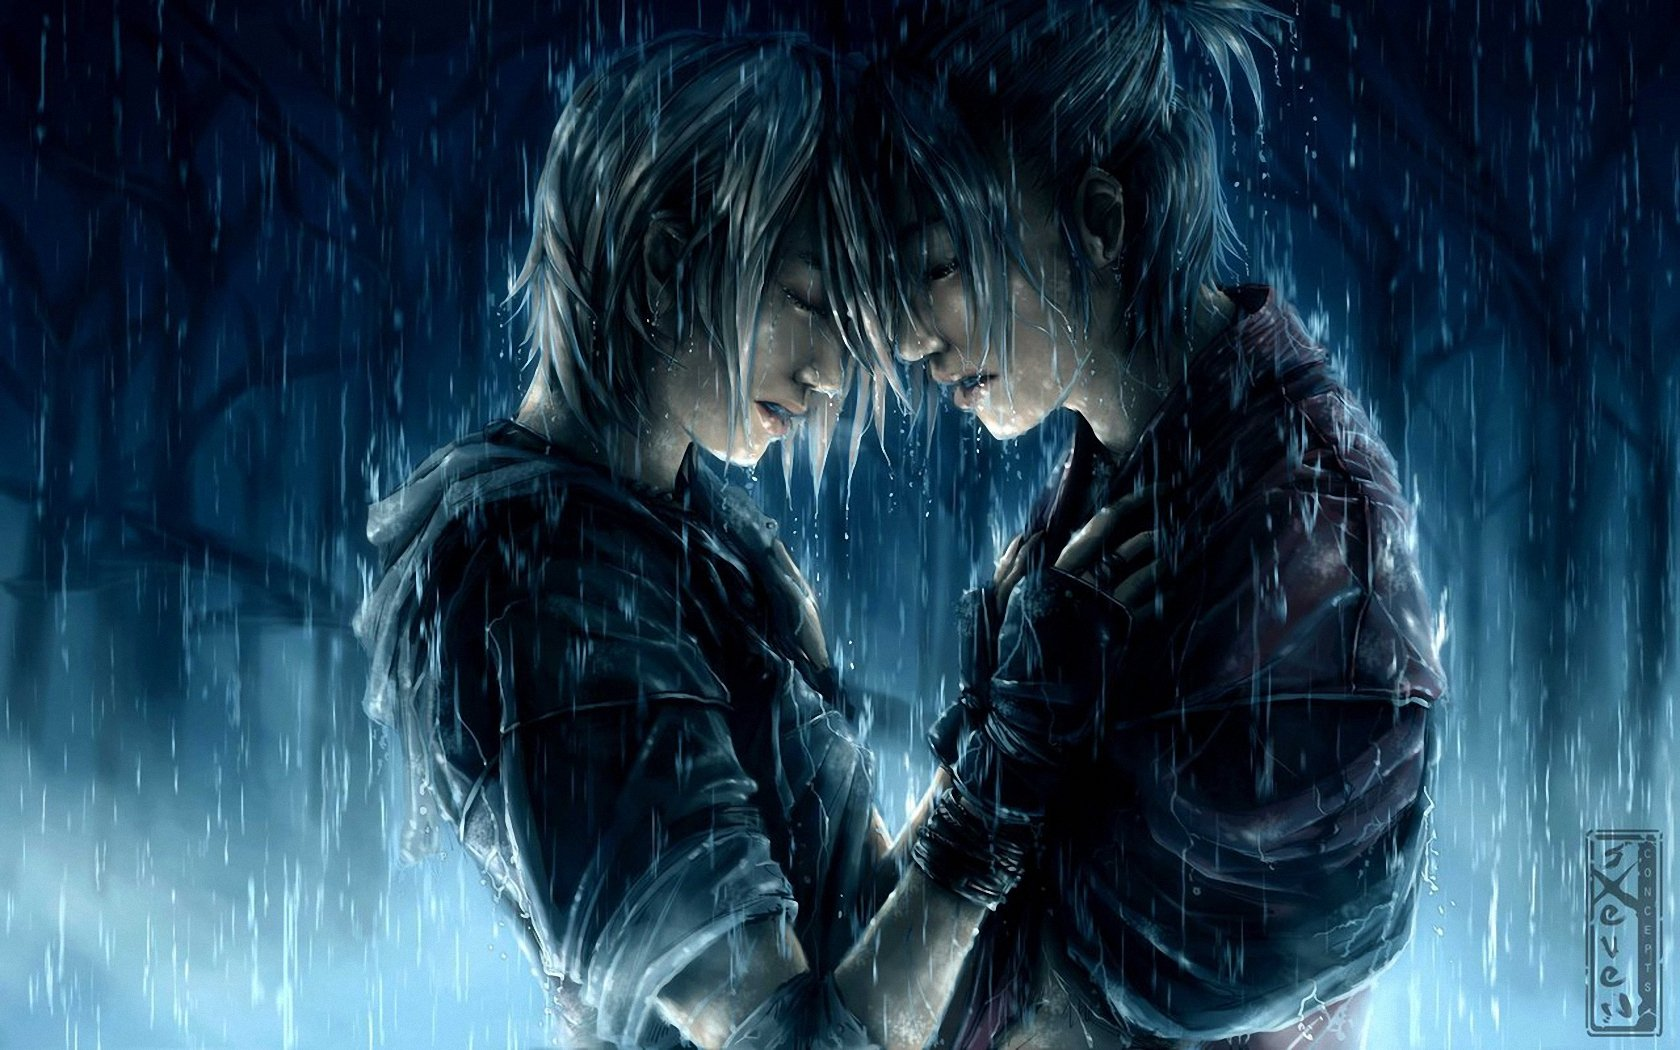 Anime Love Wallpapers: Rainy Love Wallpaper And Background Image